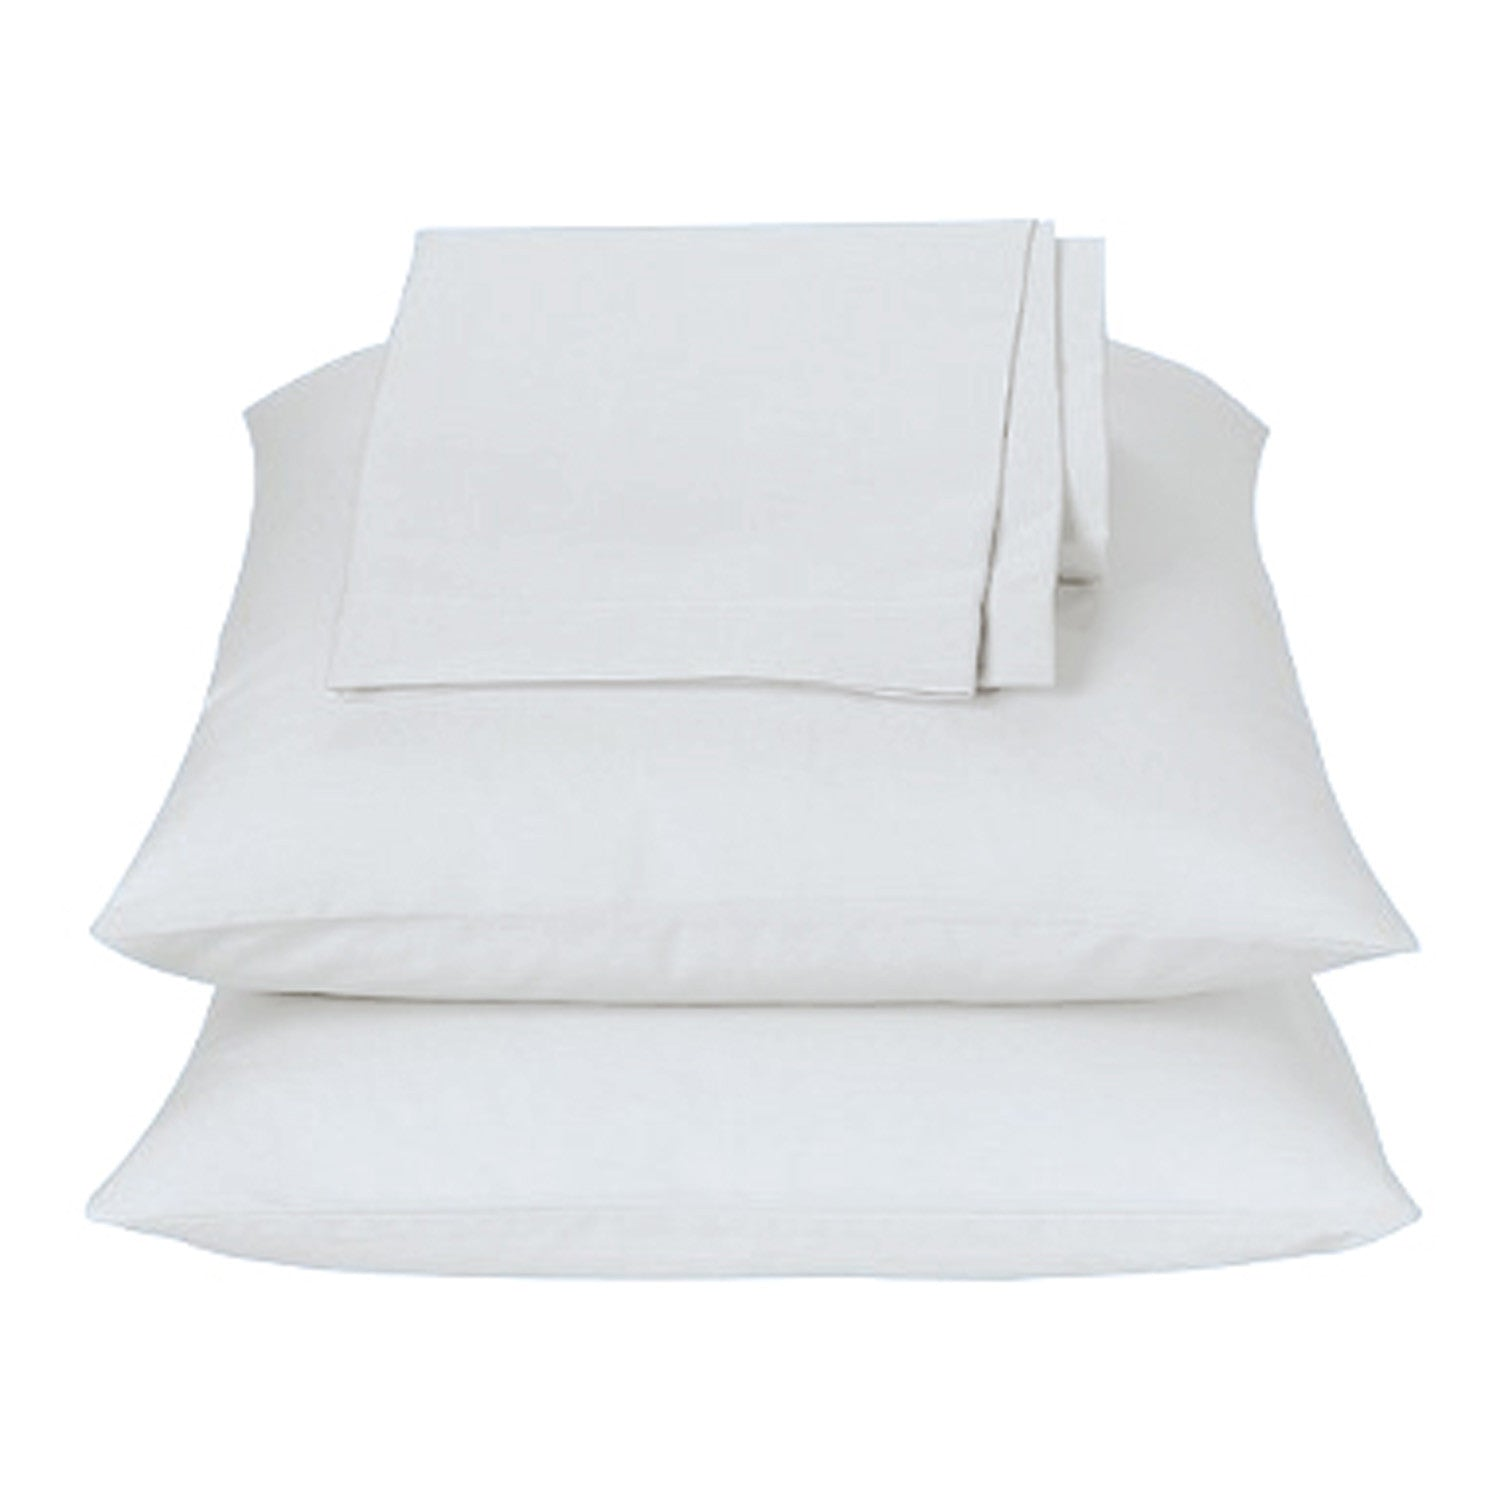 White Waterbed Sheets Super Twin - Back40Trading2